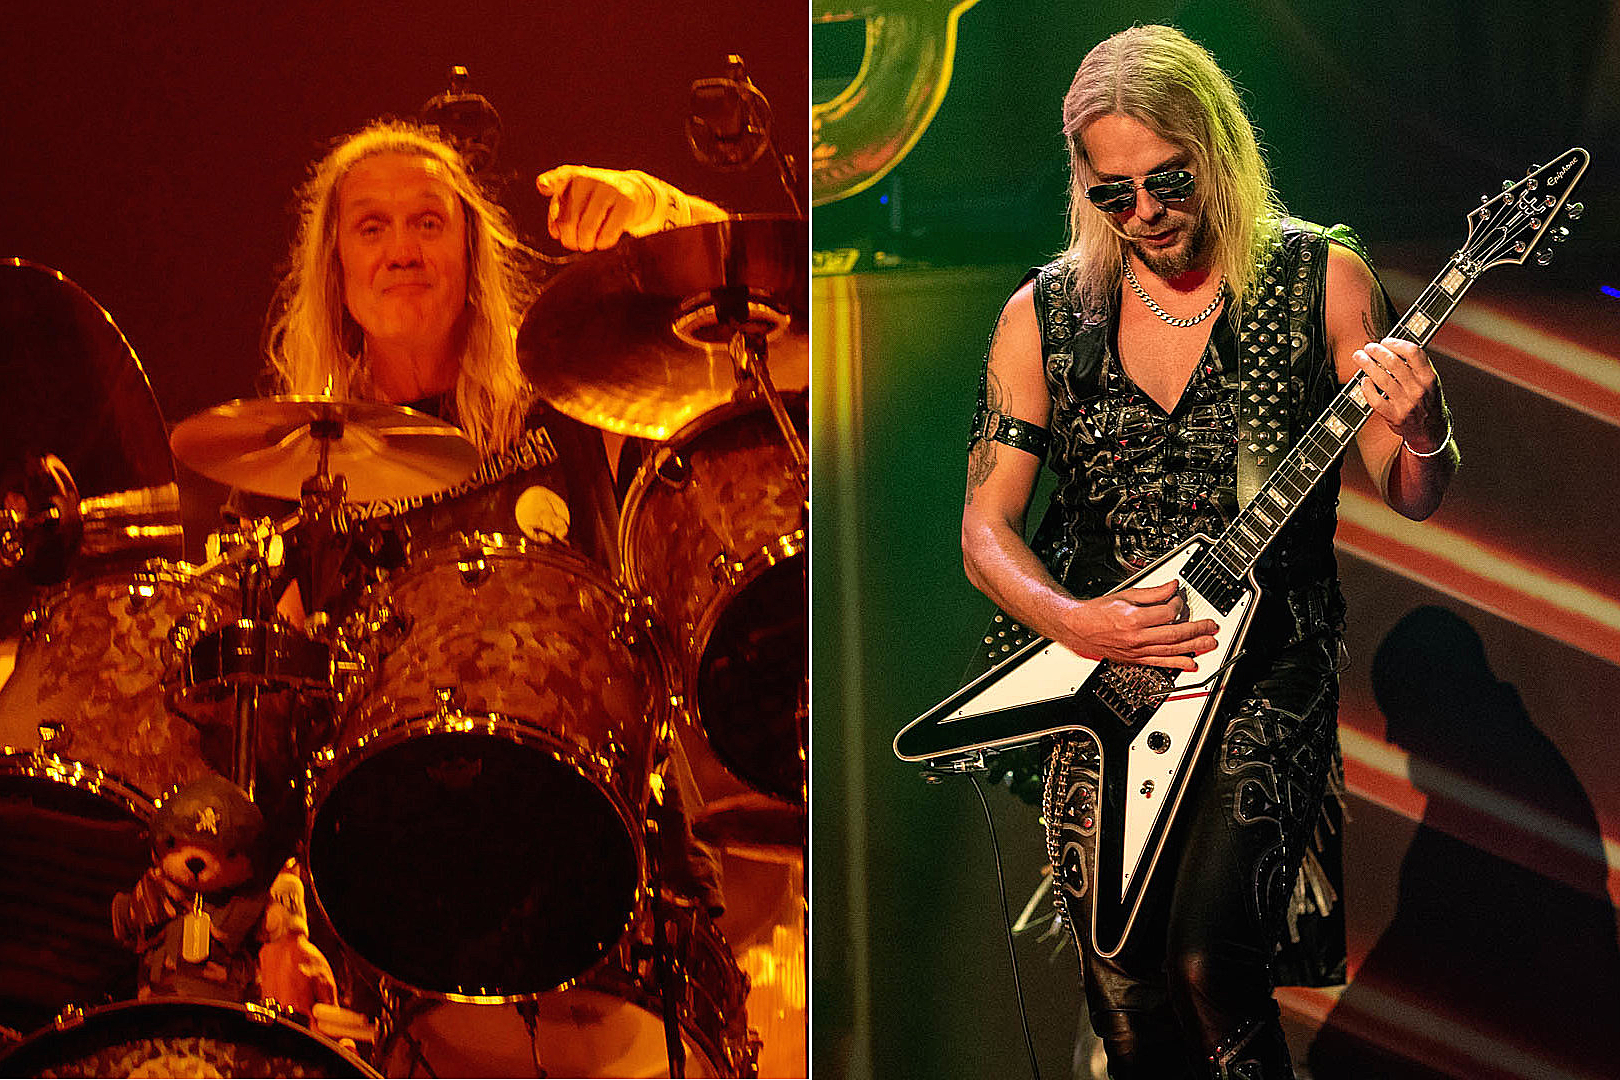 Iron Maiden + Judas Priest Members Play With Tributes to Their Own Bands